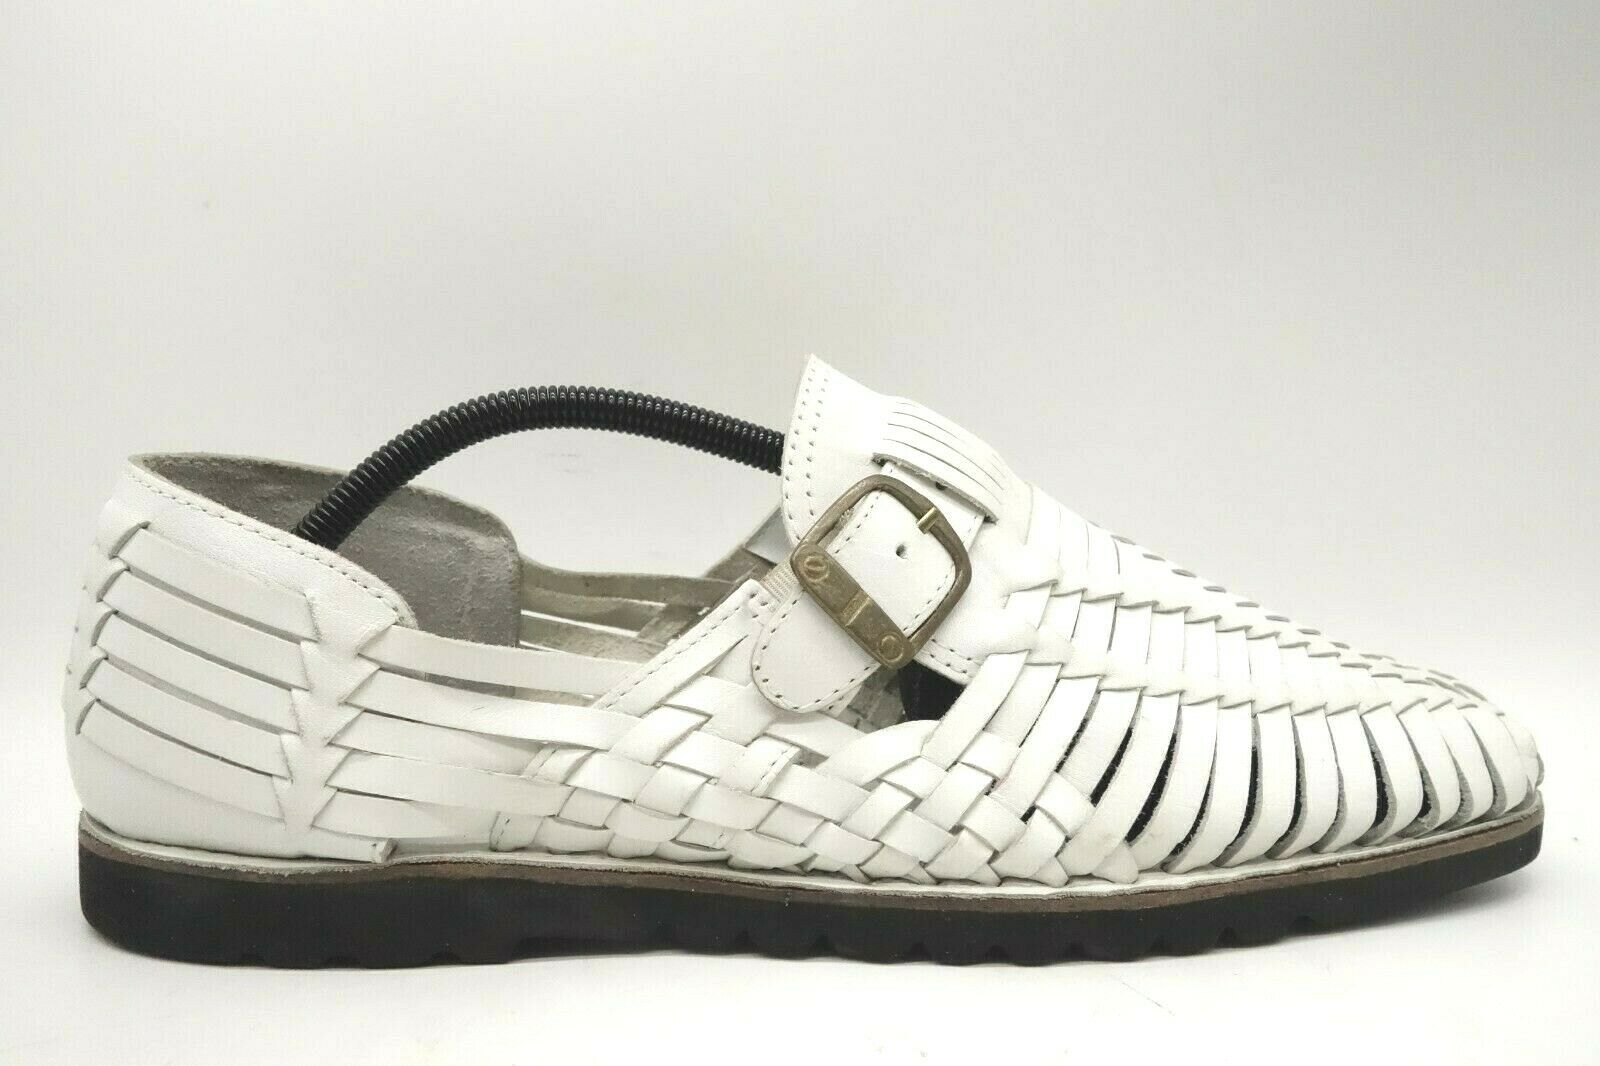 GBX White Leather Casual Slip On Side Buckle Huarache Sandals Shoes Men's 12 M